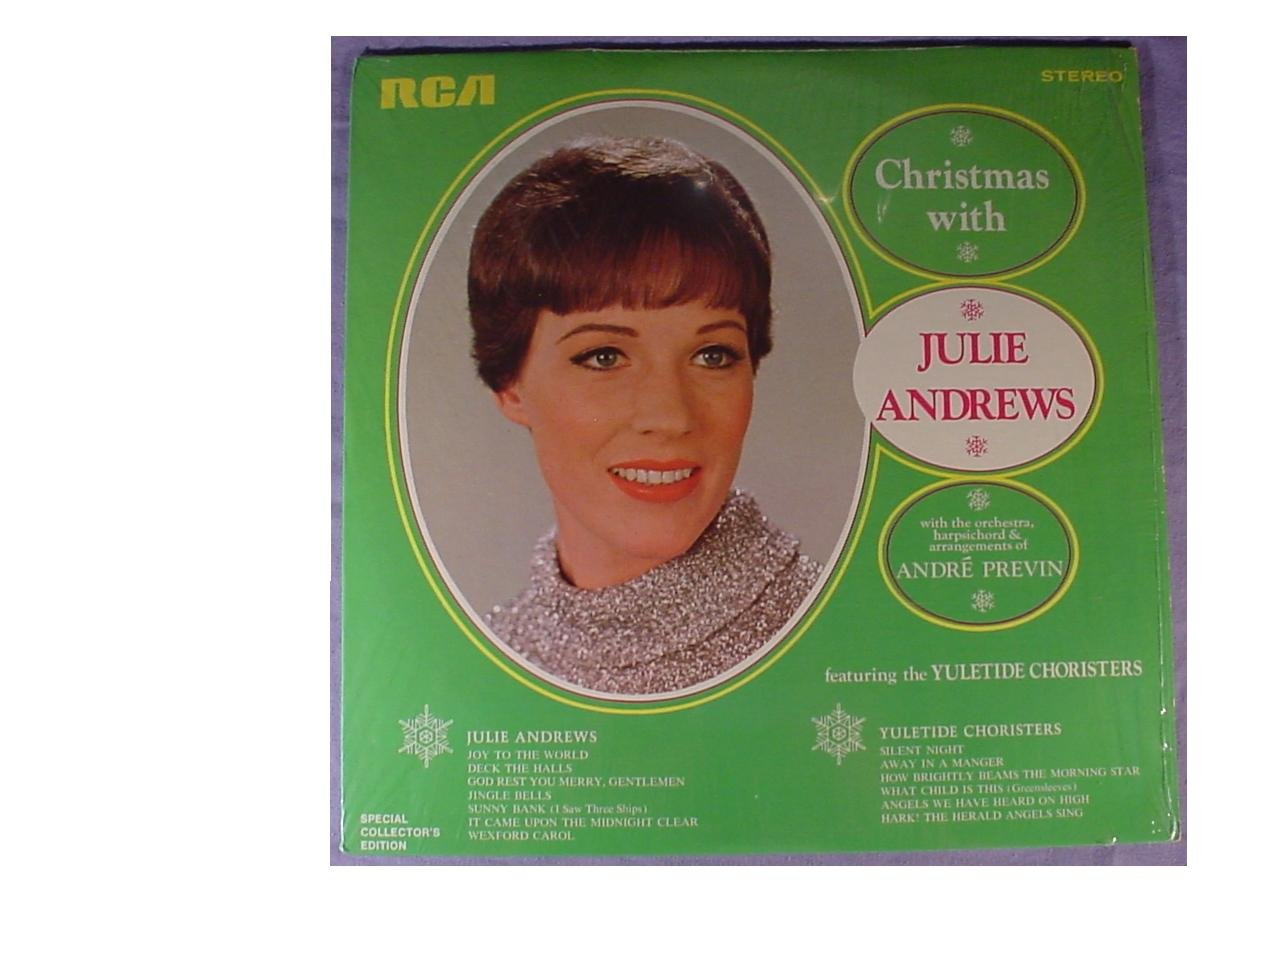 Julie Andrews, Yuletide Choristers, Andre Previn - Christmas With ...